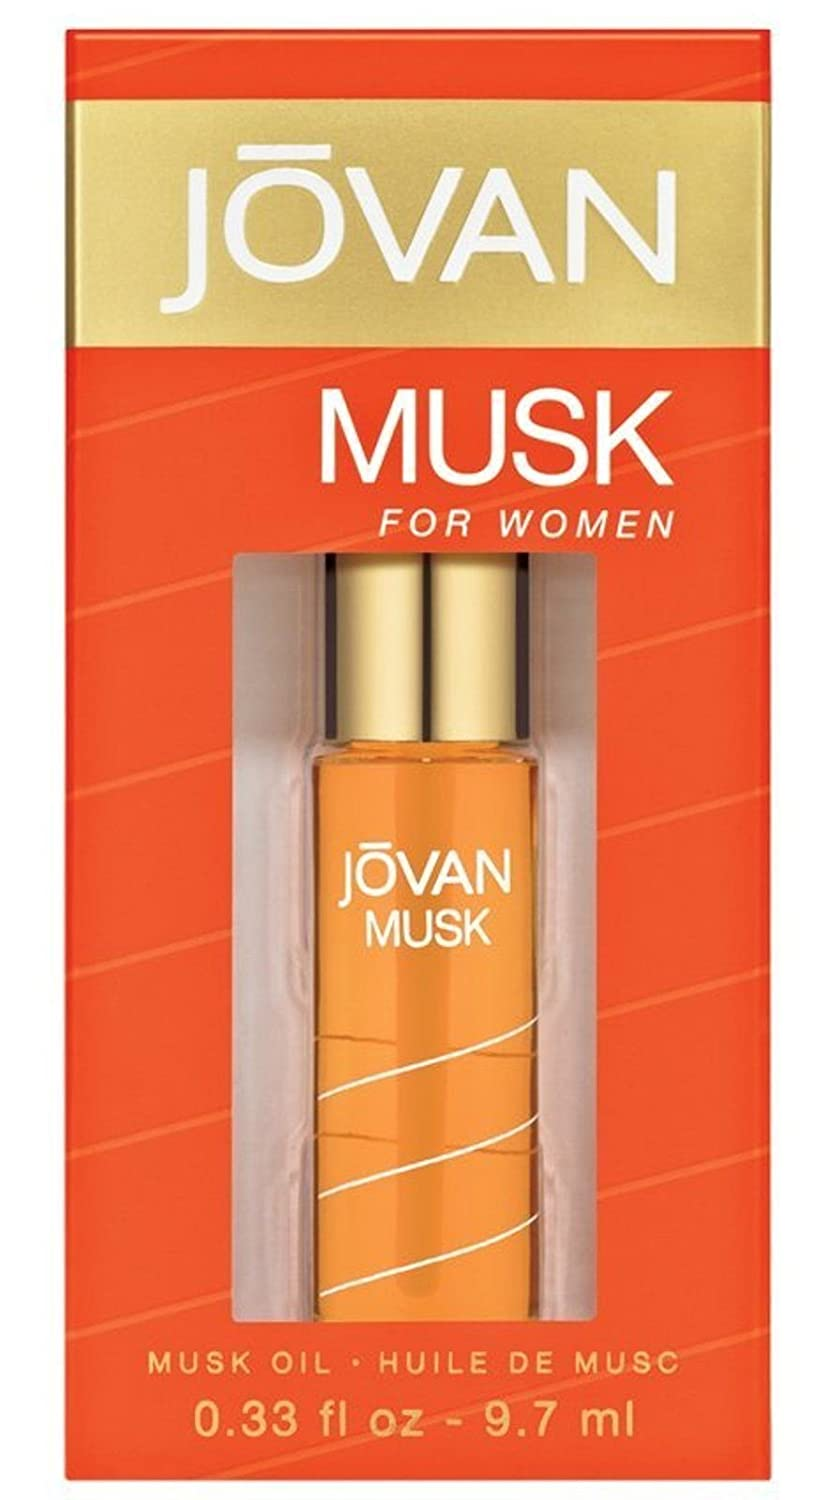 Jovan, Musk Oil, Olio profumato, 9,7 ml HealthCentre 121660